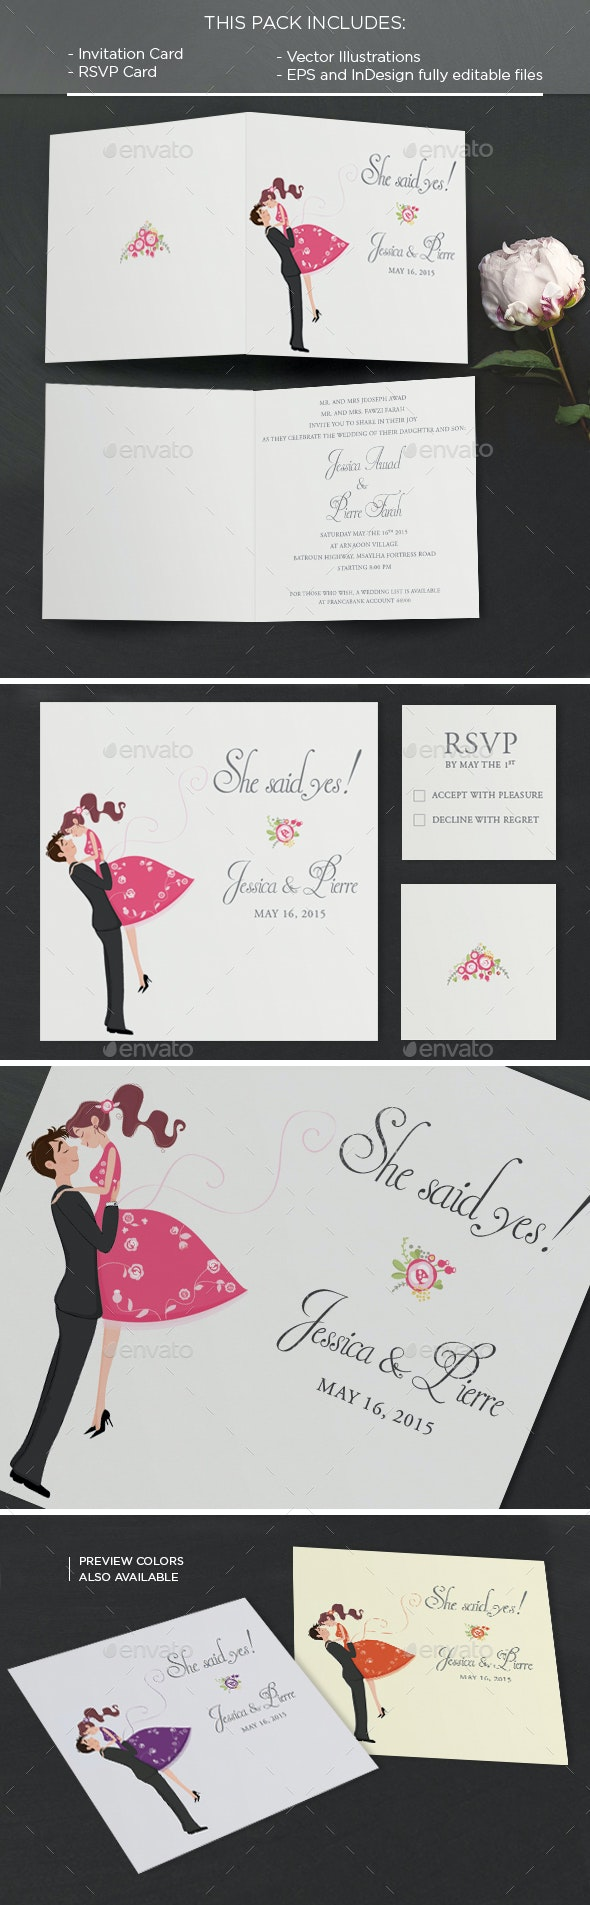 Wind: Invitation Card - Weddings Cards & Invites